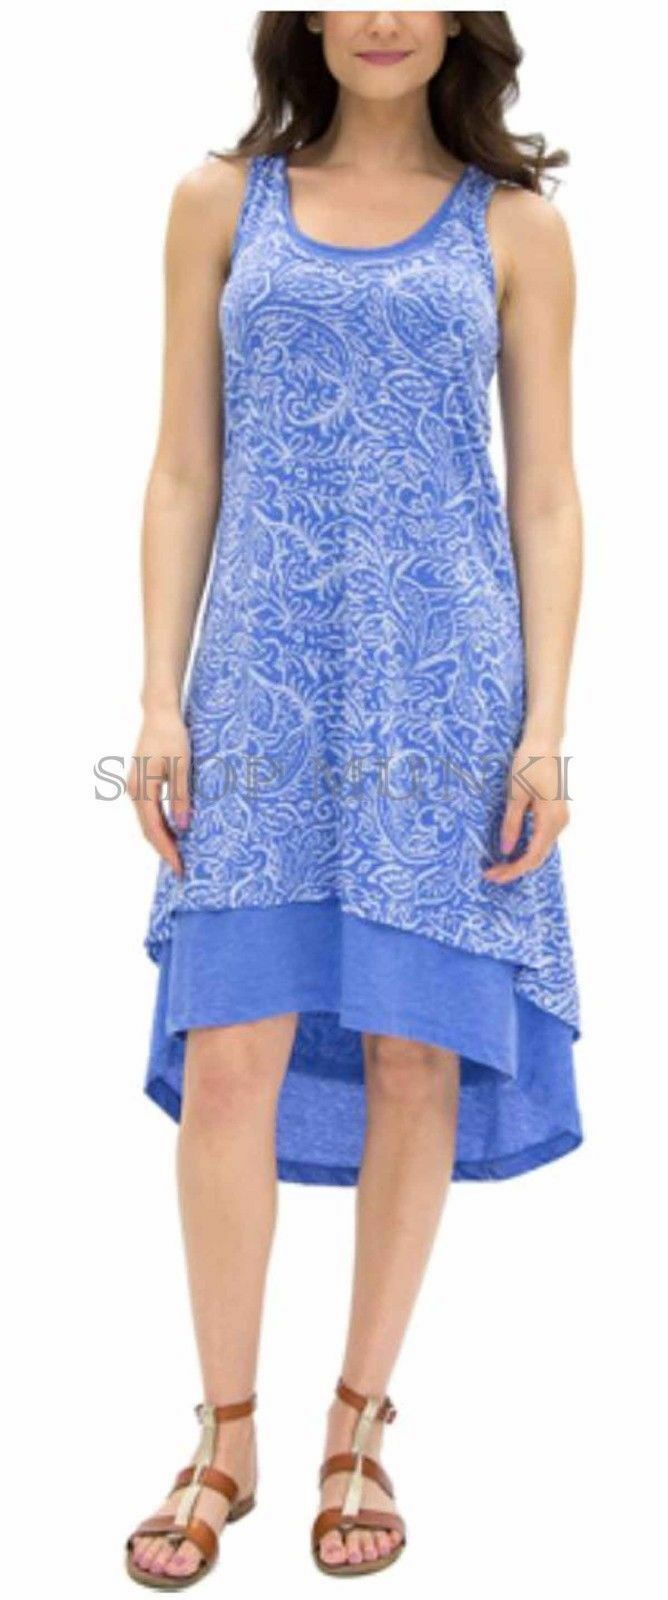 4efc6eab10 Mod-o-doc Blue LAPIS Keyhole Back Sleeveless High-Low Hem Tank Dress XS -  $34.65